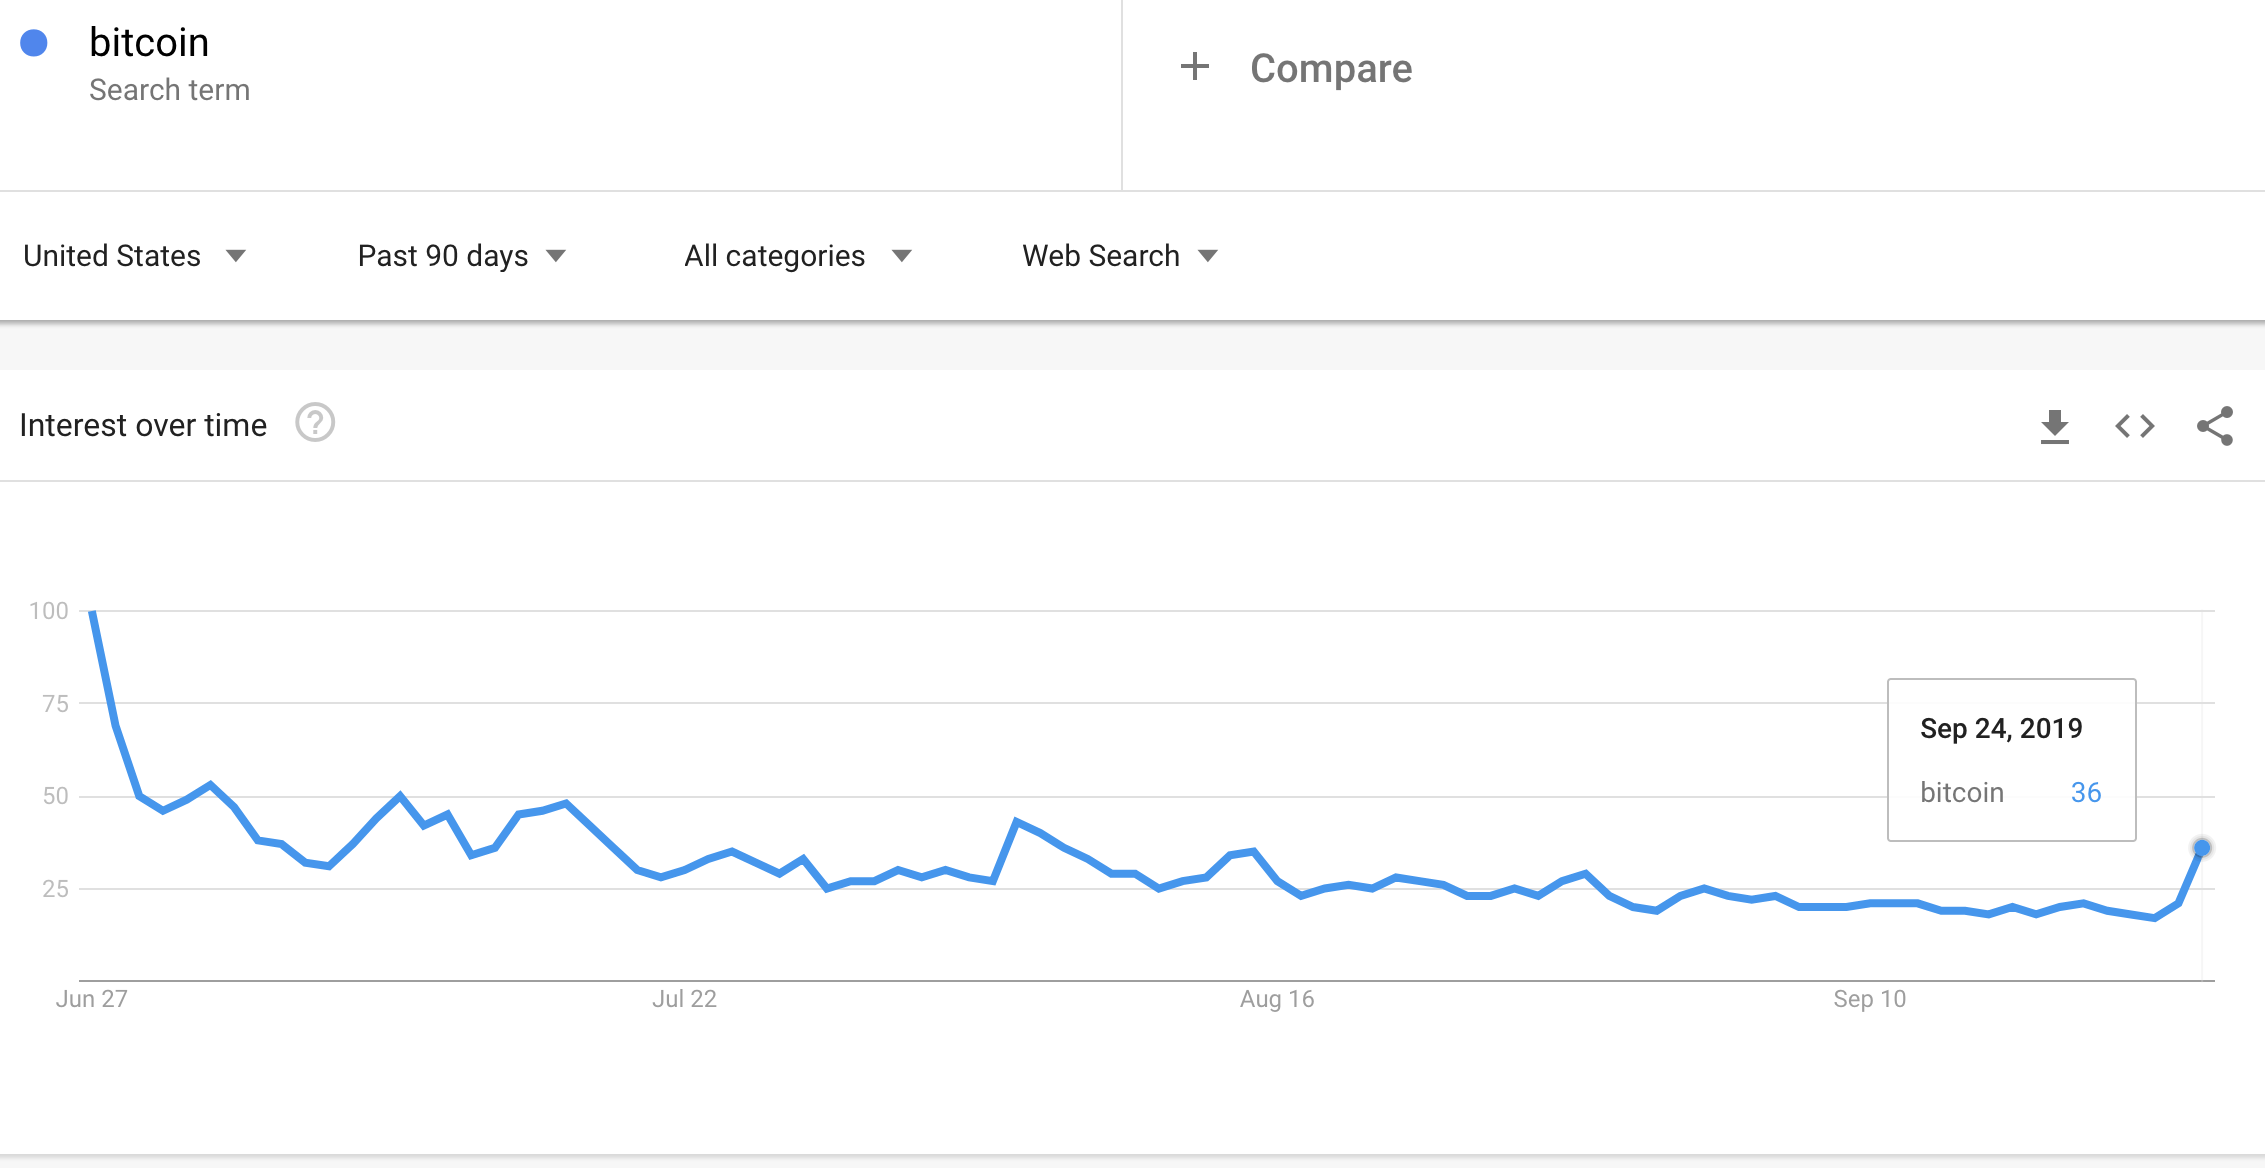 Google trends for Bitcoin is showing early signs of responding to the sudden drop in the price of Bitcoin.